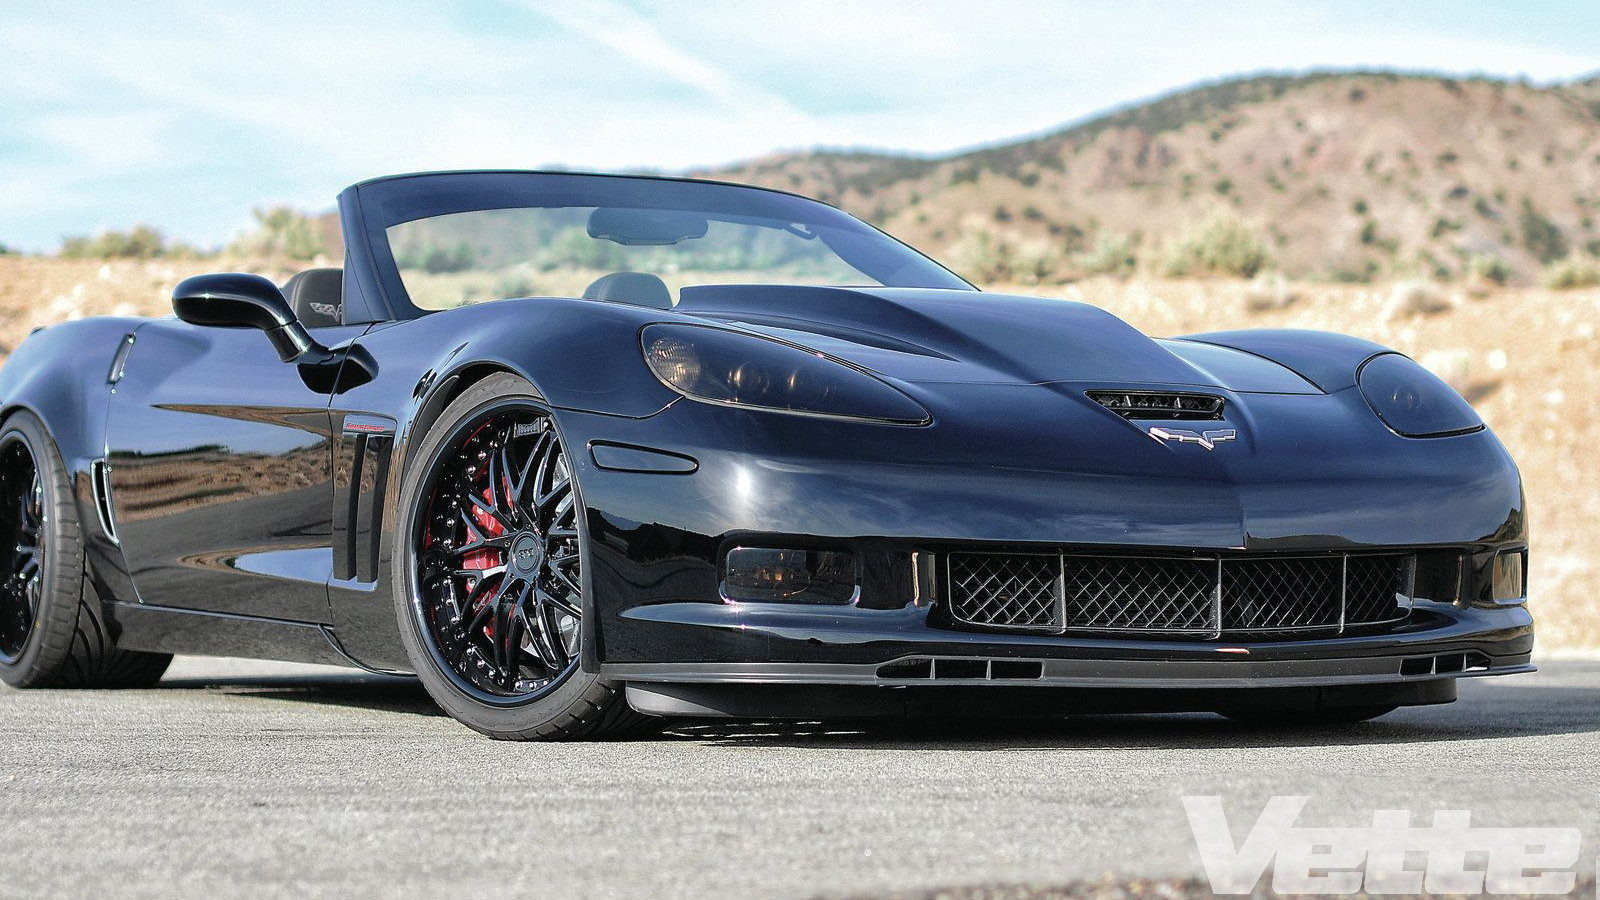 2005 Corvette Gets the GS treatment